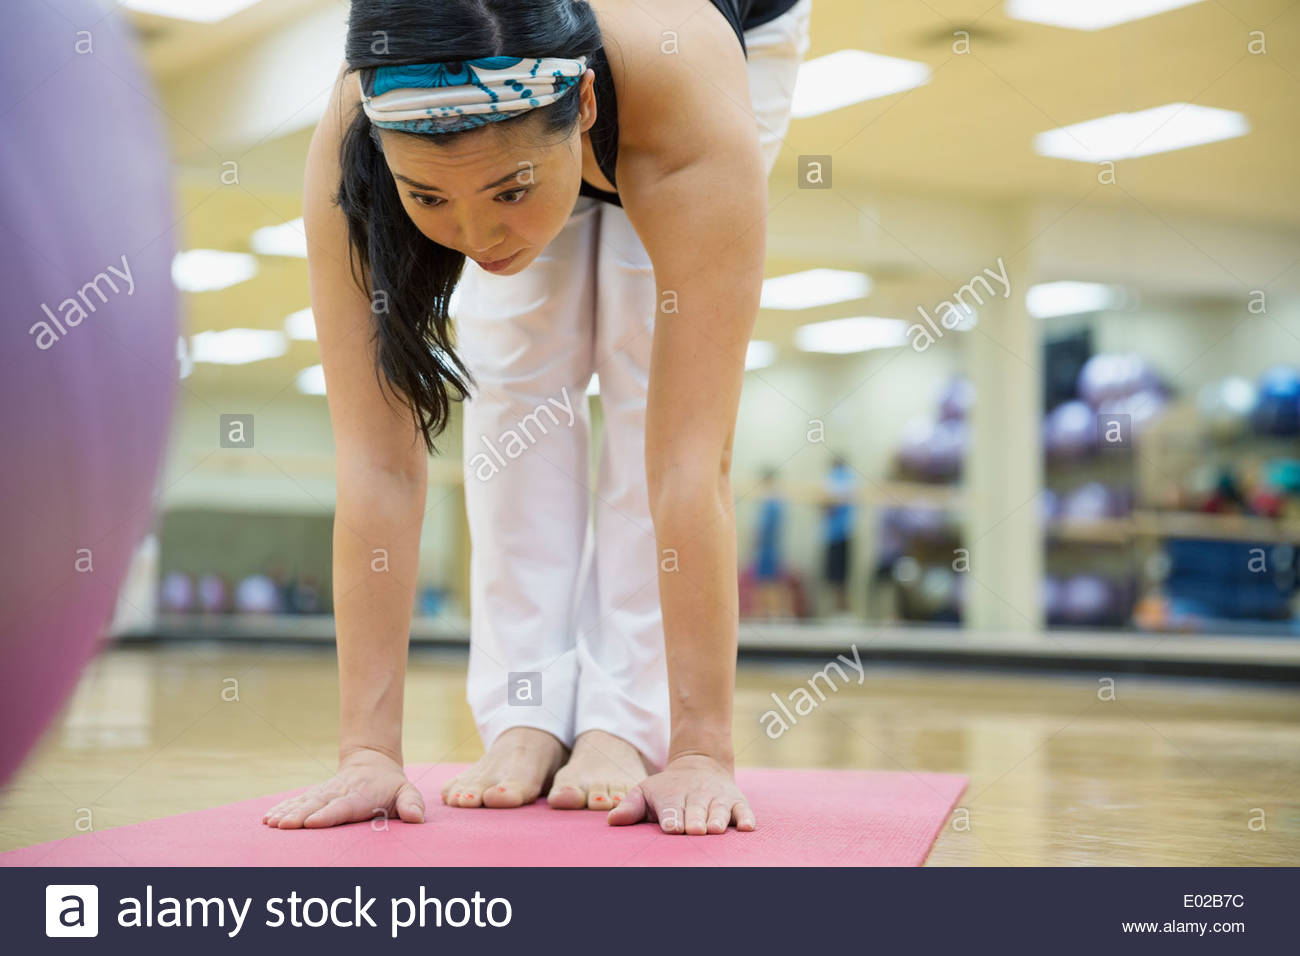 Woman practicing yoga at gym Photo Stock